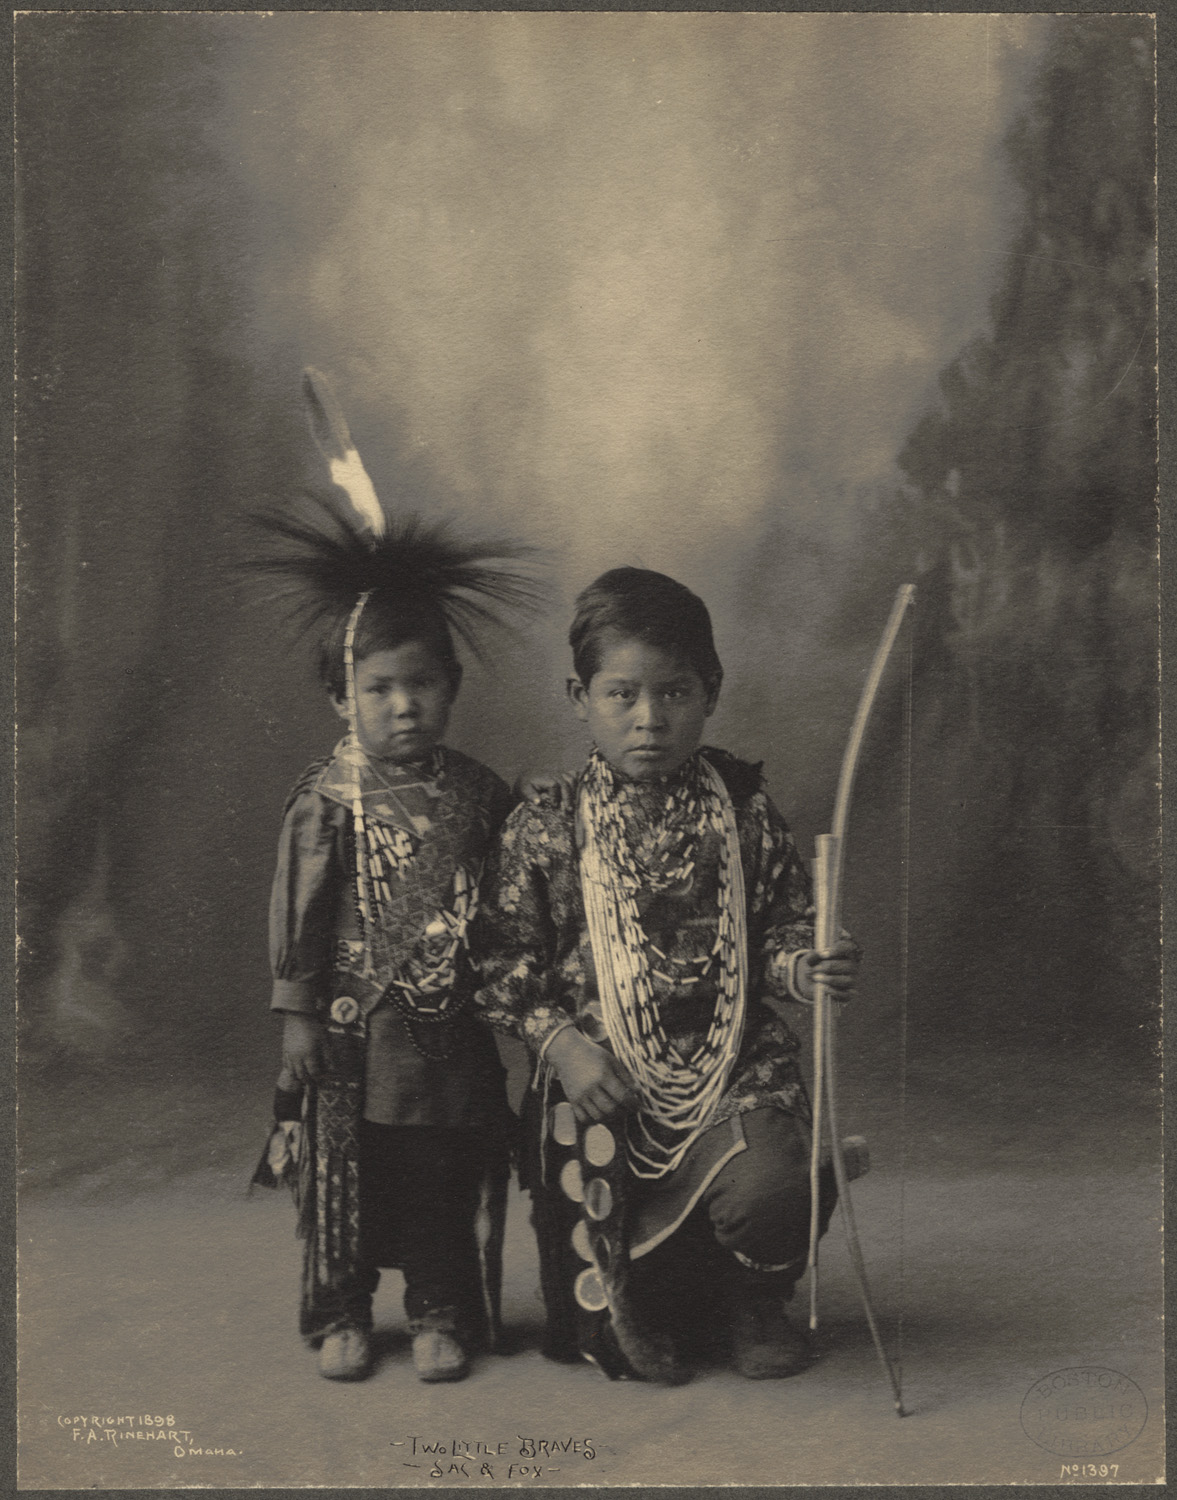 The Dramatic Beauty Of These Portraits Is Especially Impressive As A Departure From Earlier Less Sensitive Photographs Native Americans